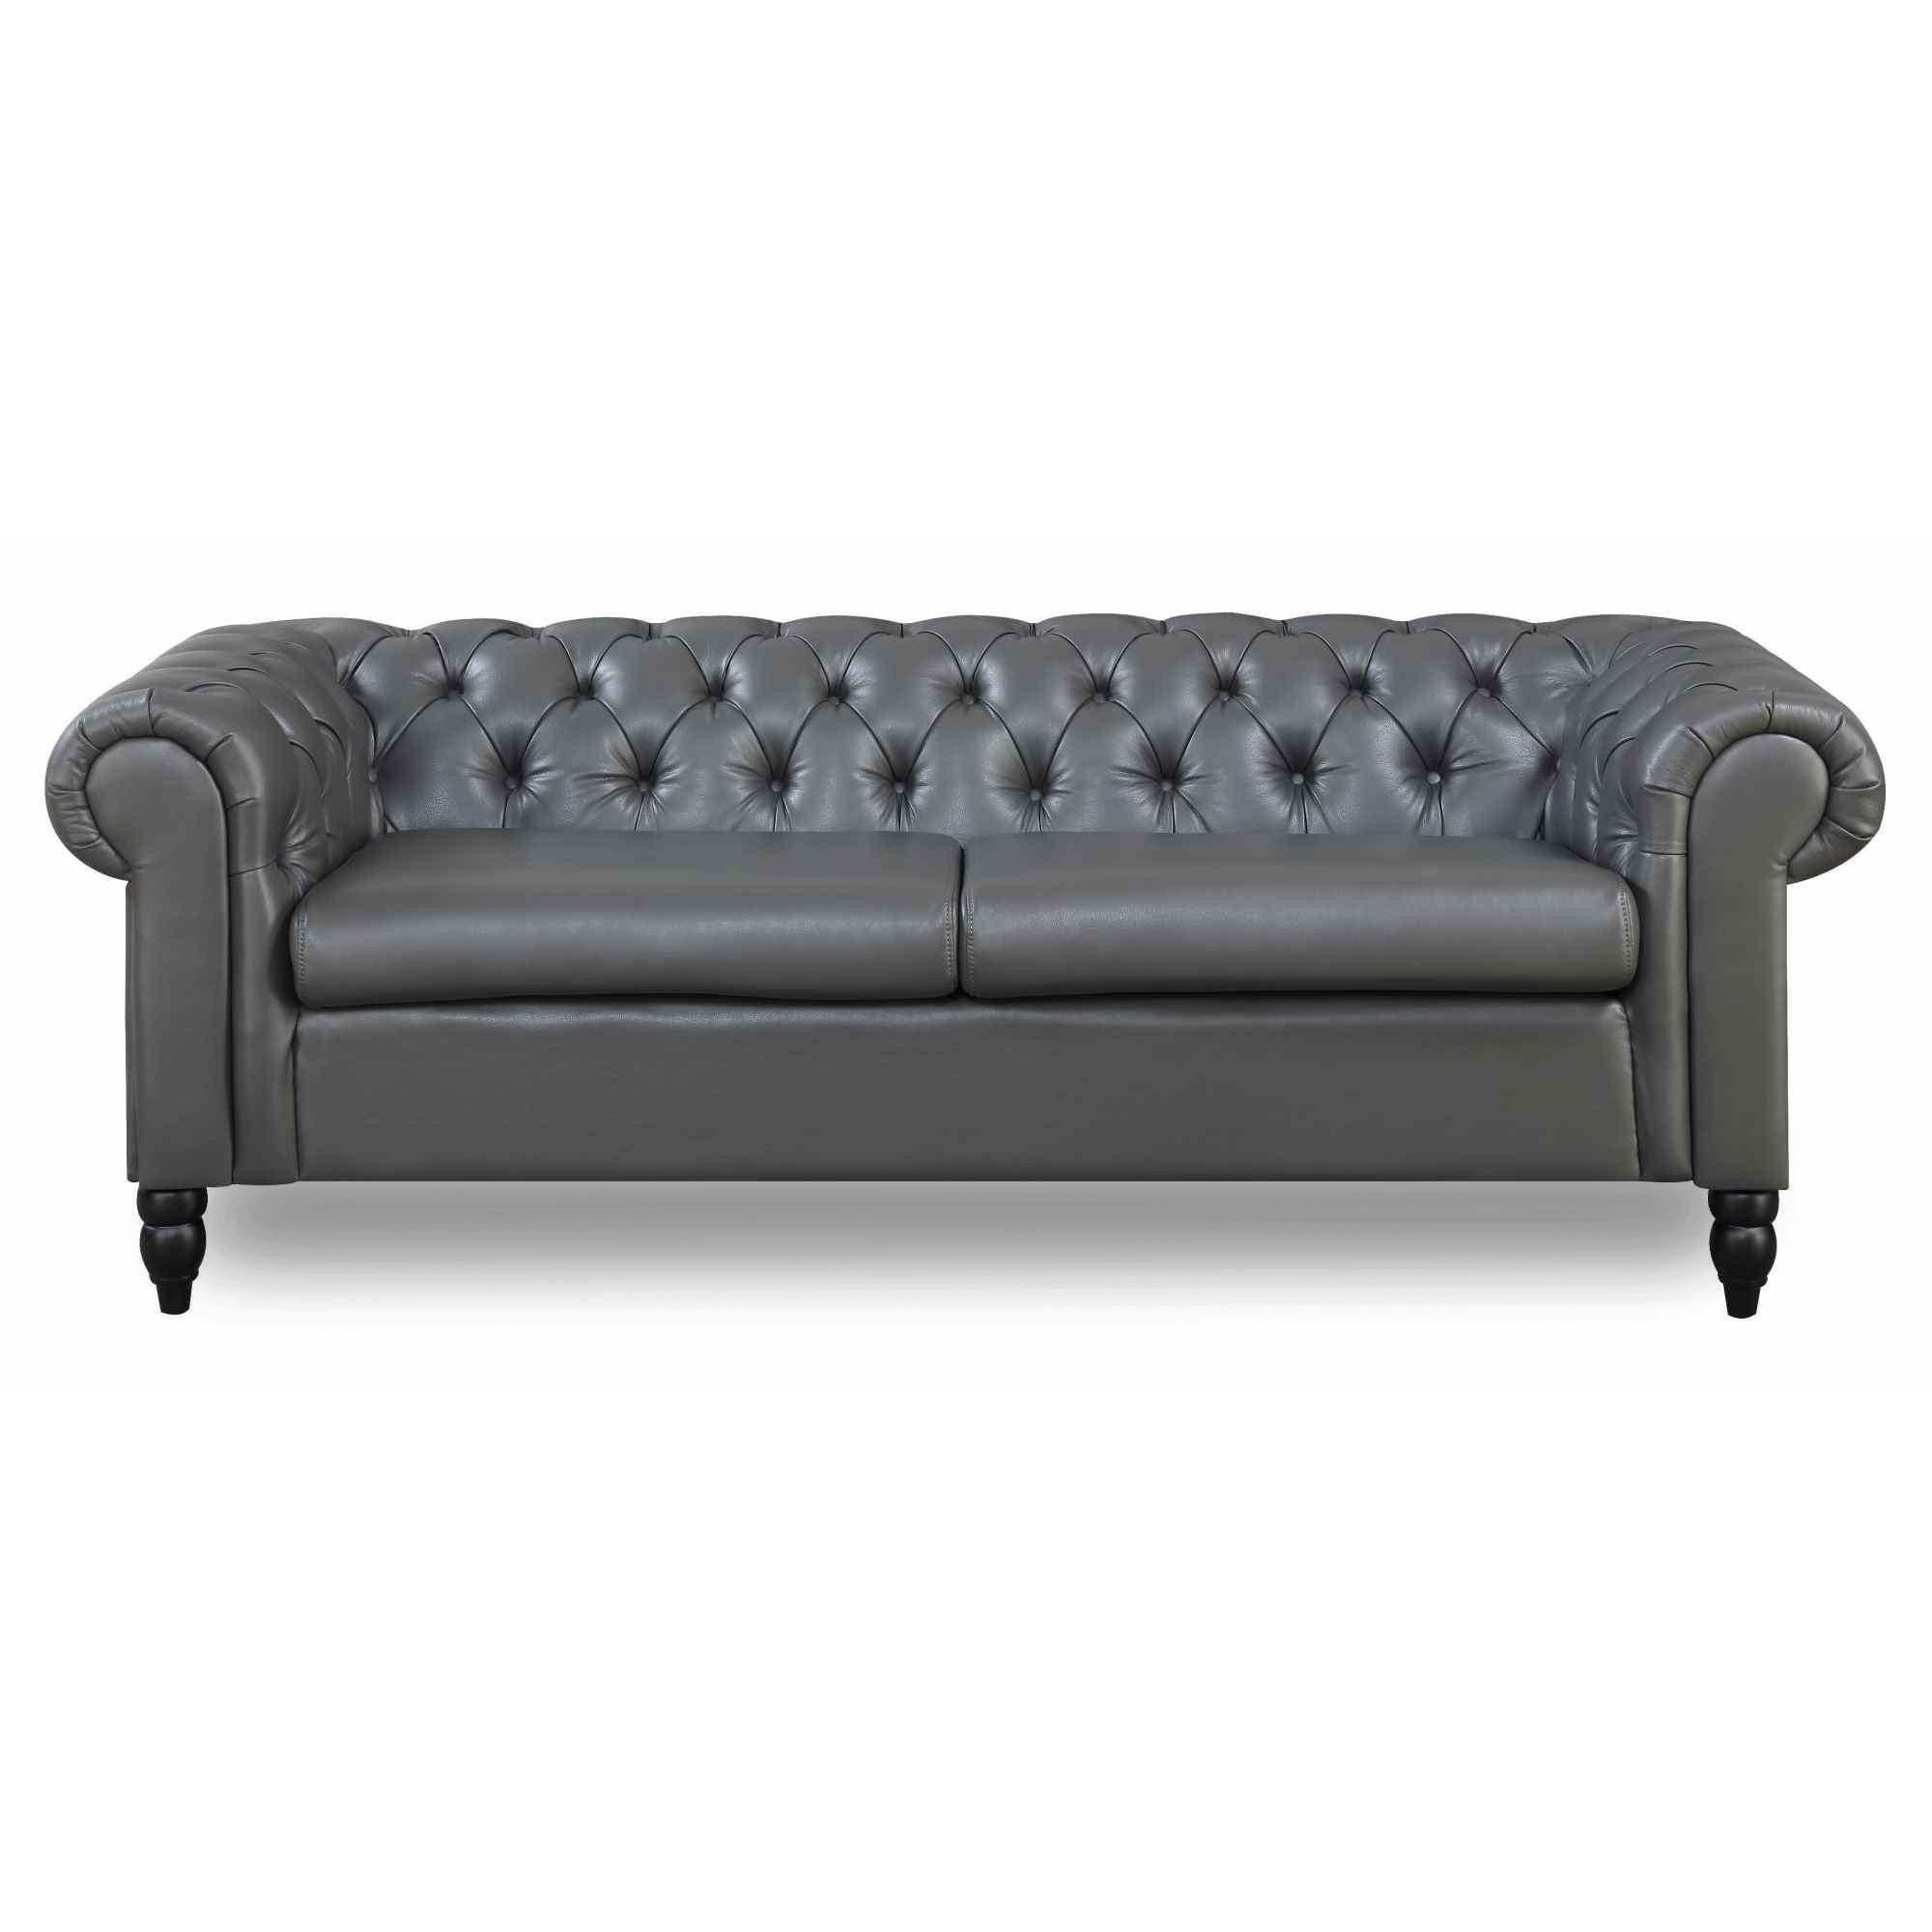 Canape Chesterfield 2 Places Gris Winston Chester Winston ... destiné Canape Winston But